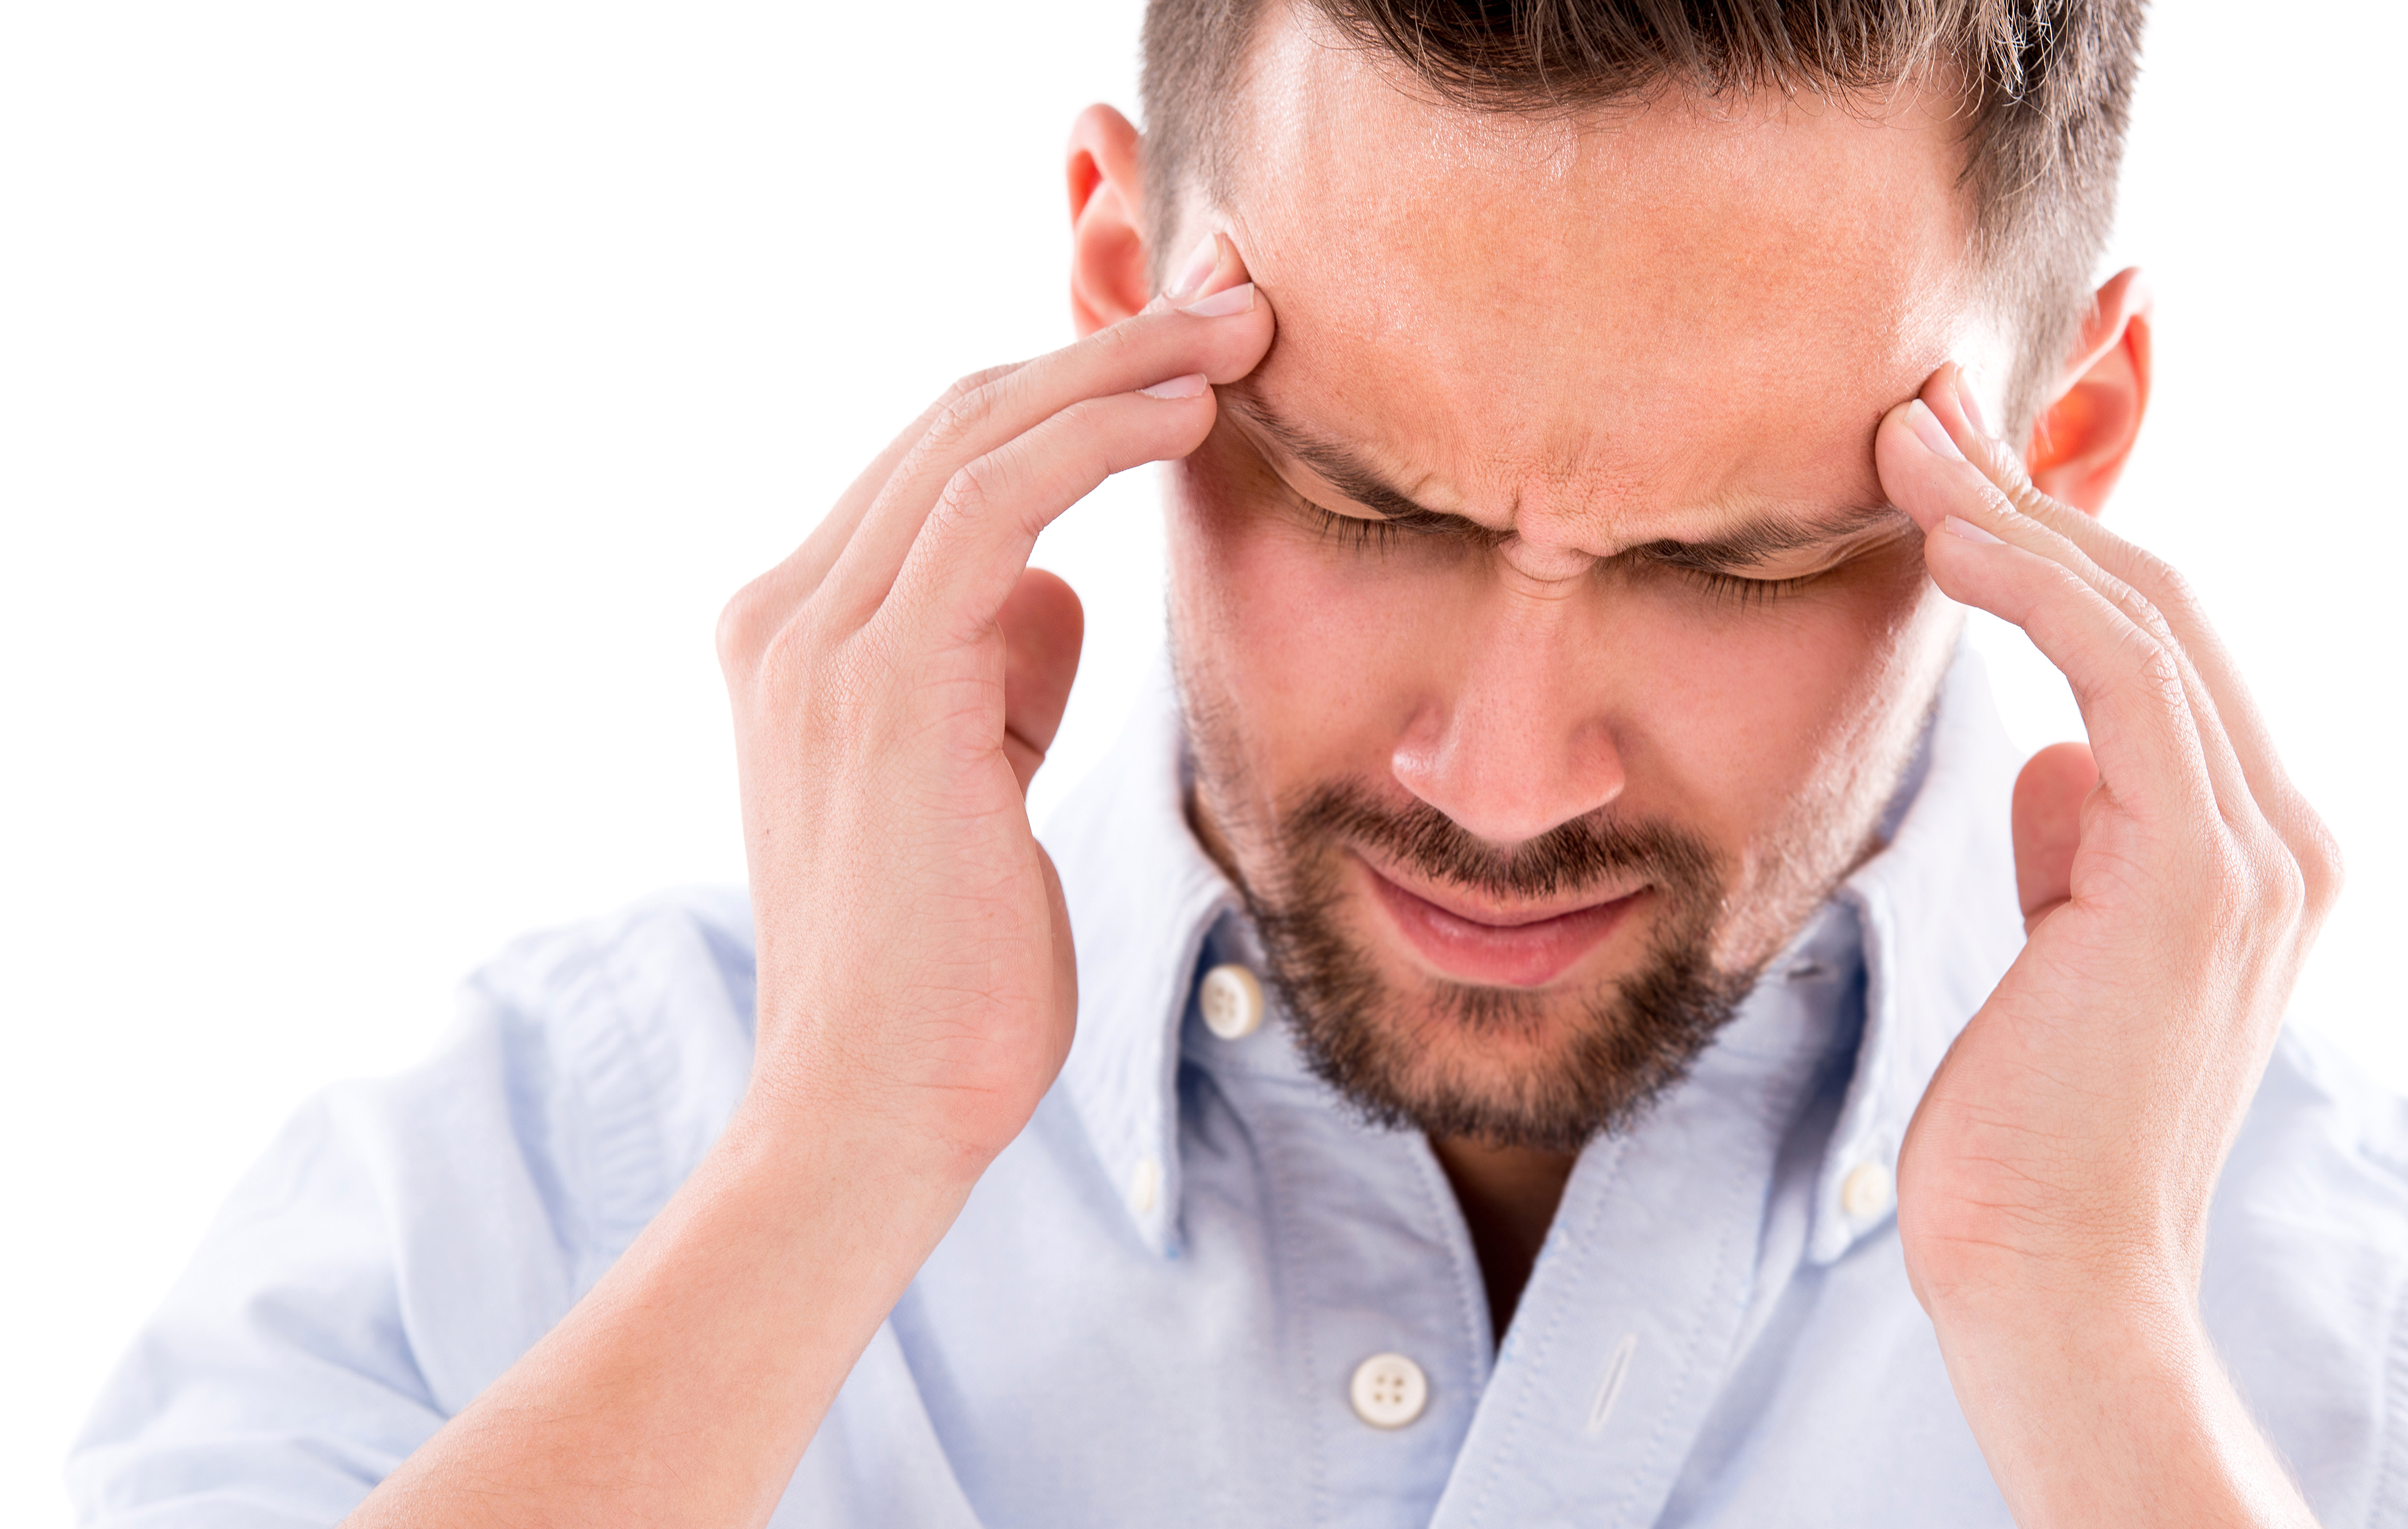 headache and migraine relief from our tulsa chiropractor